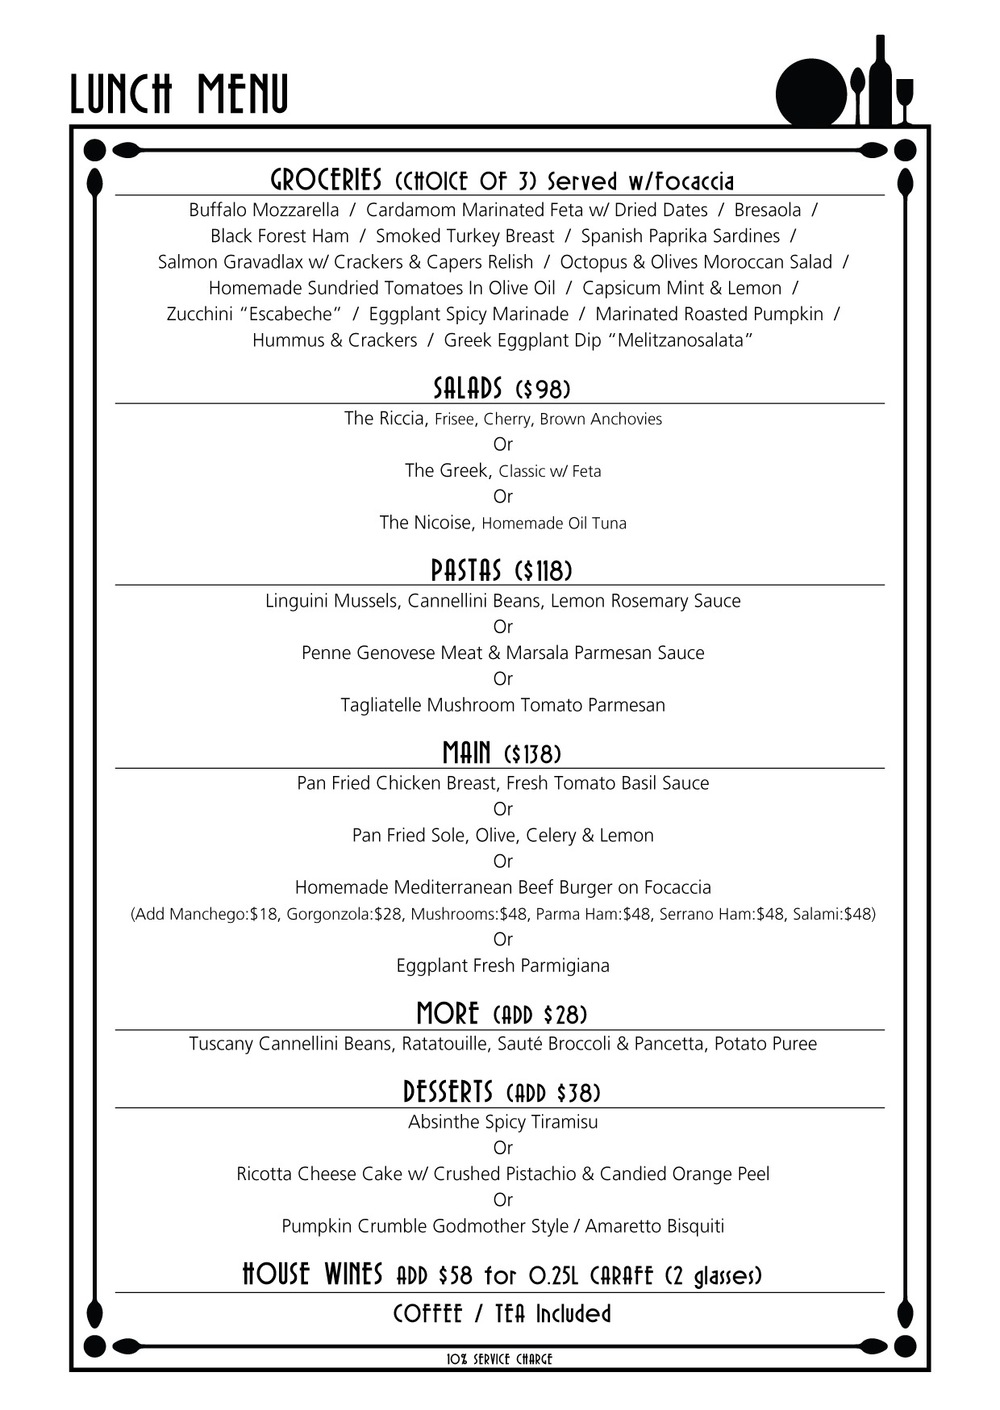 A6 lunch menu front.jpg